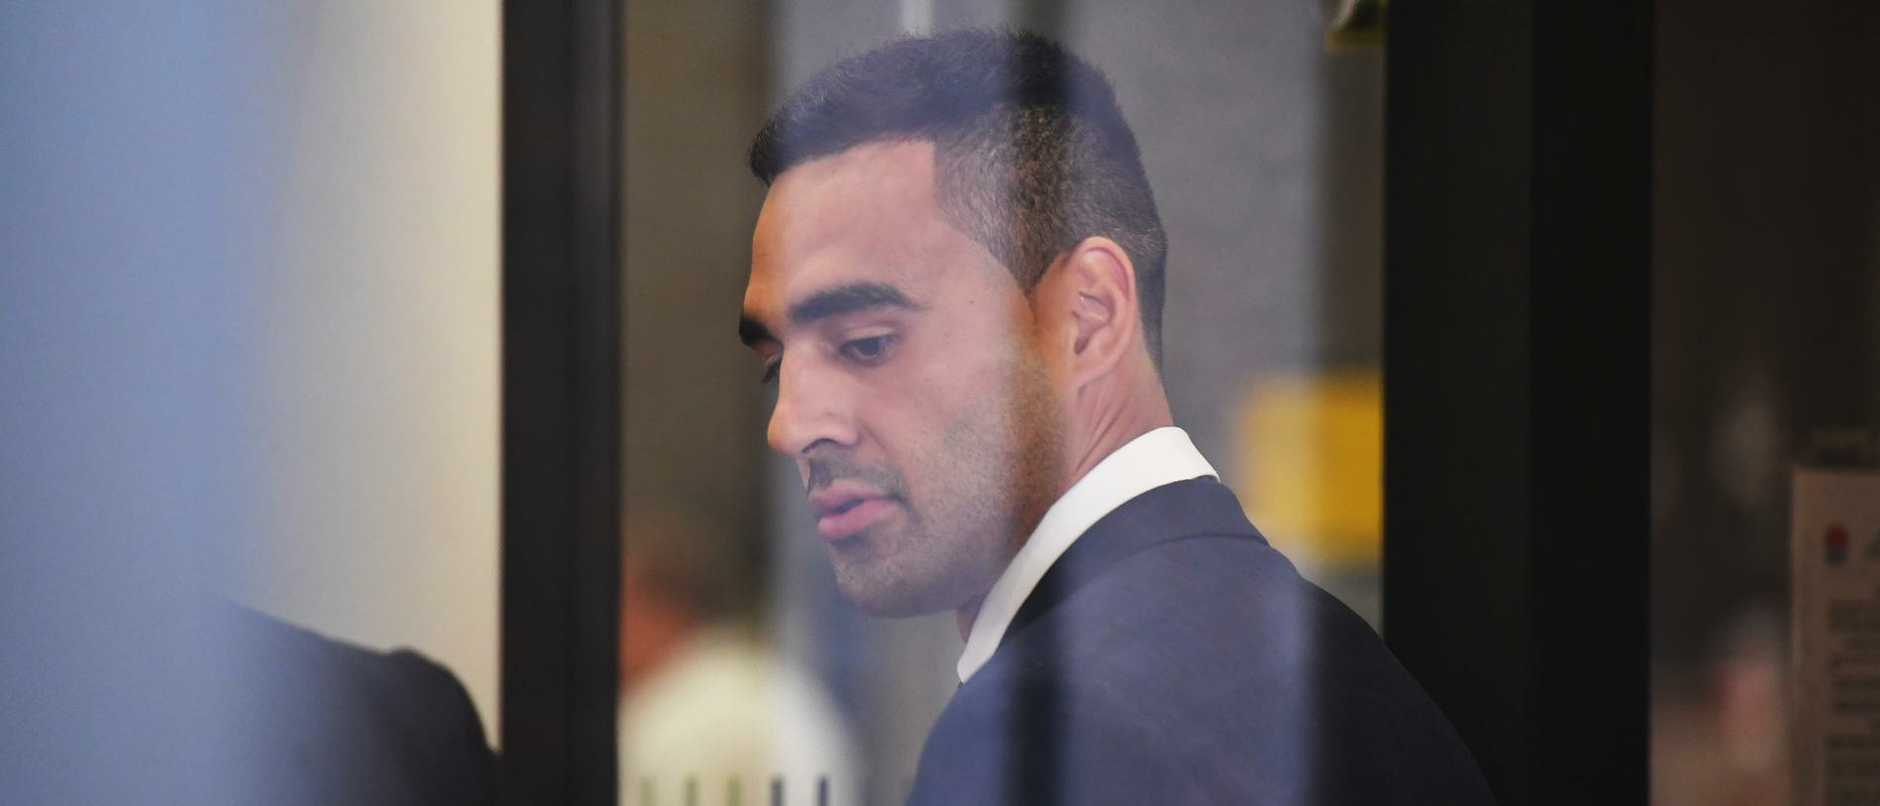 Penrith Panthers player Tyrone May arrives at the Parramatta Local Court in Sydney. (AAP Image/Peter Rae)